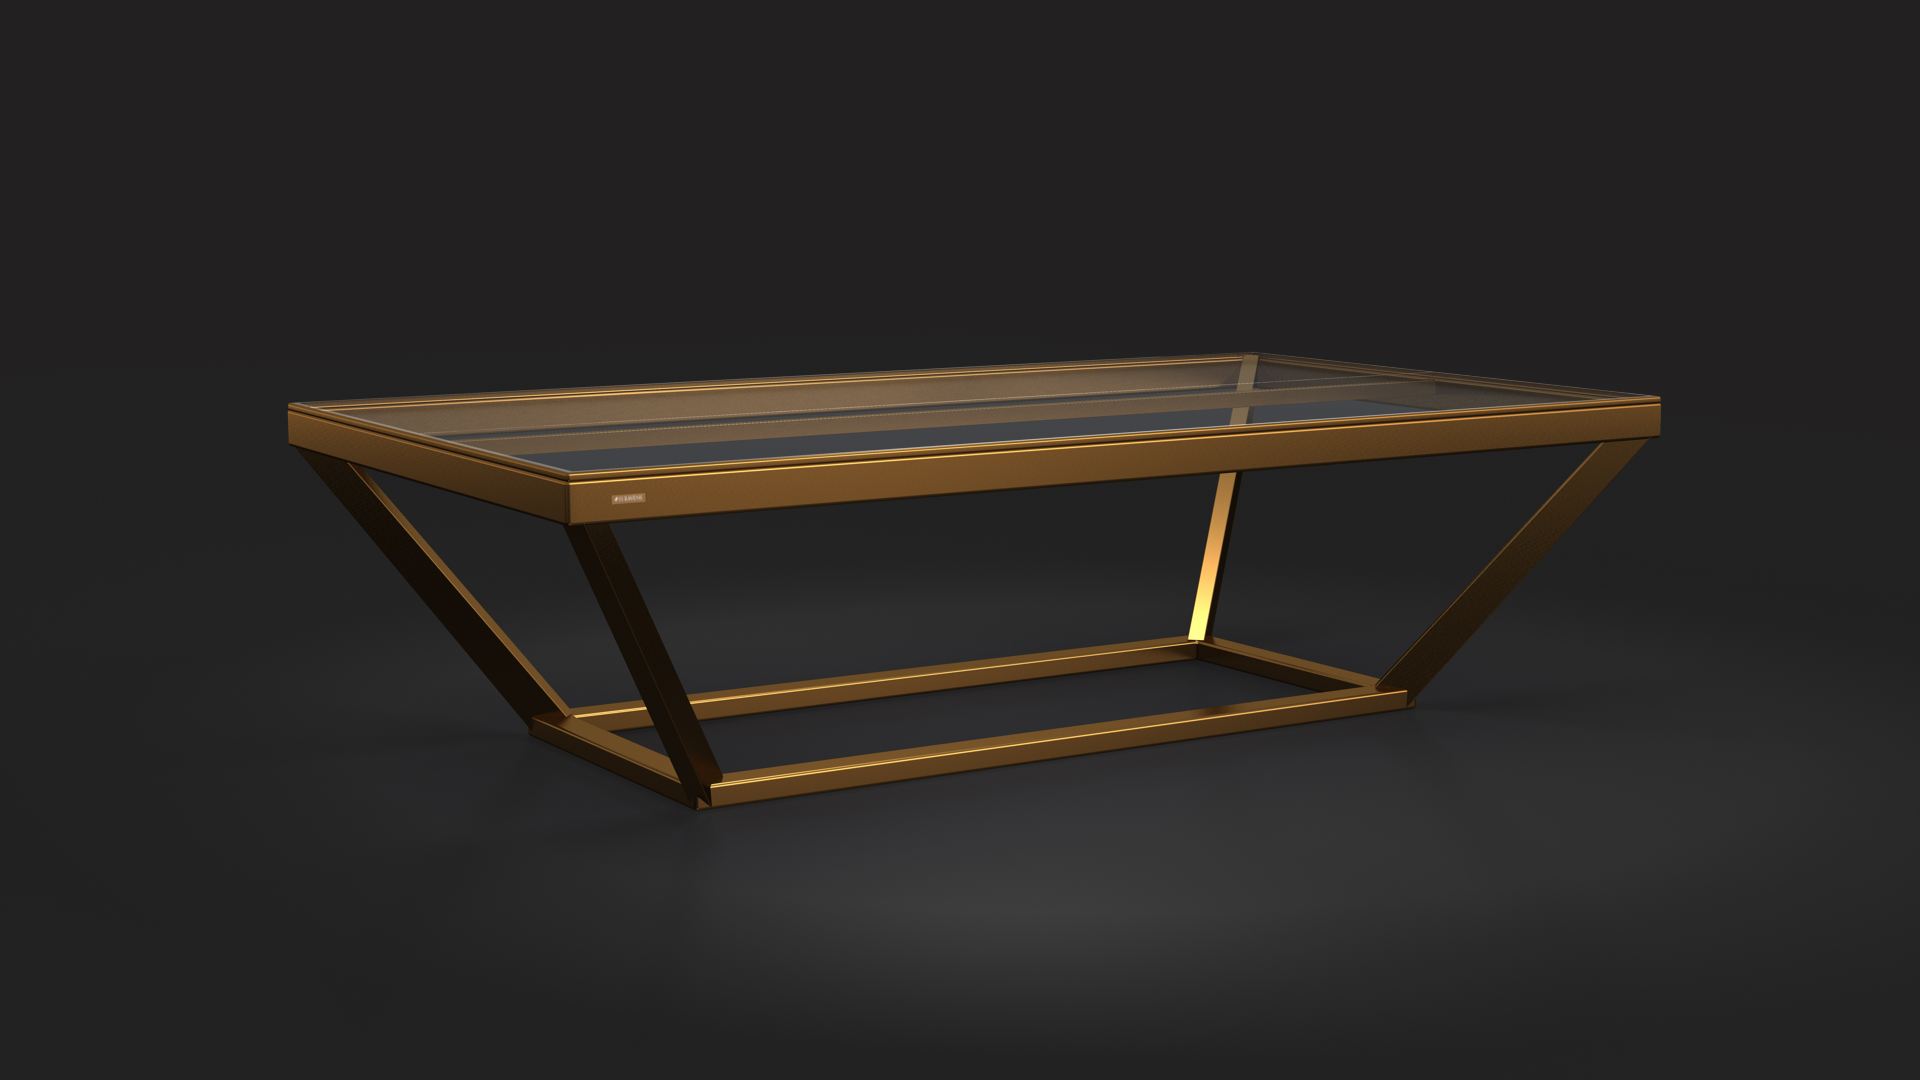 Copy of Vitro Table Tennis Table in Bronze